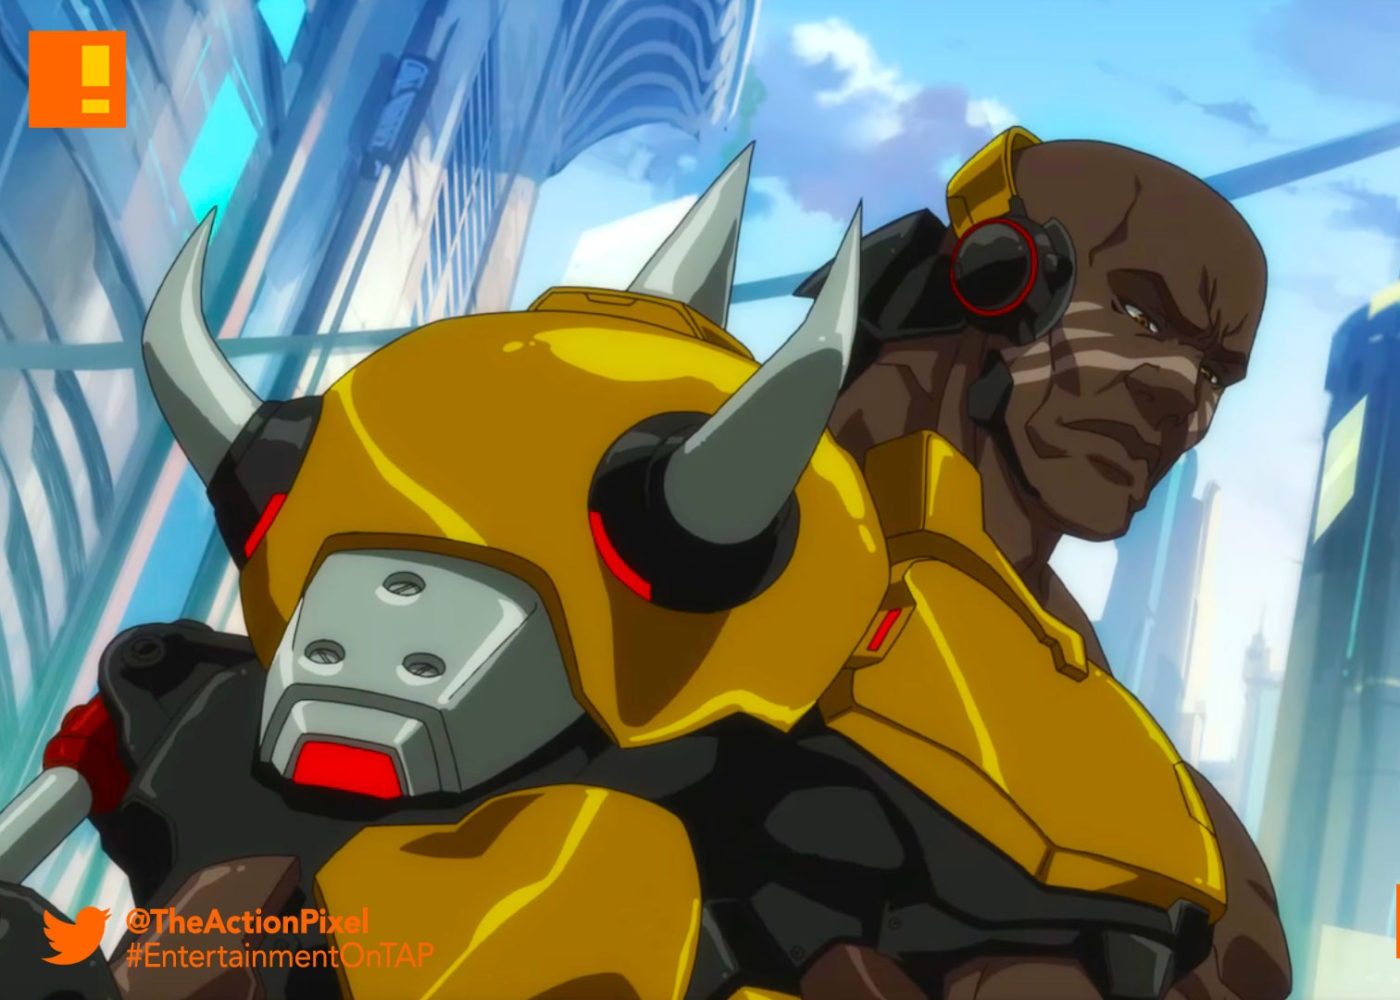 doomfist, overwatch, blizzard entertainment, blizzard, the action pixel, entertainment on tap, @theactionpixel